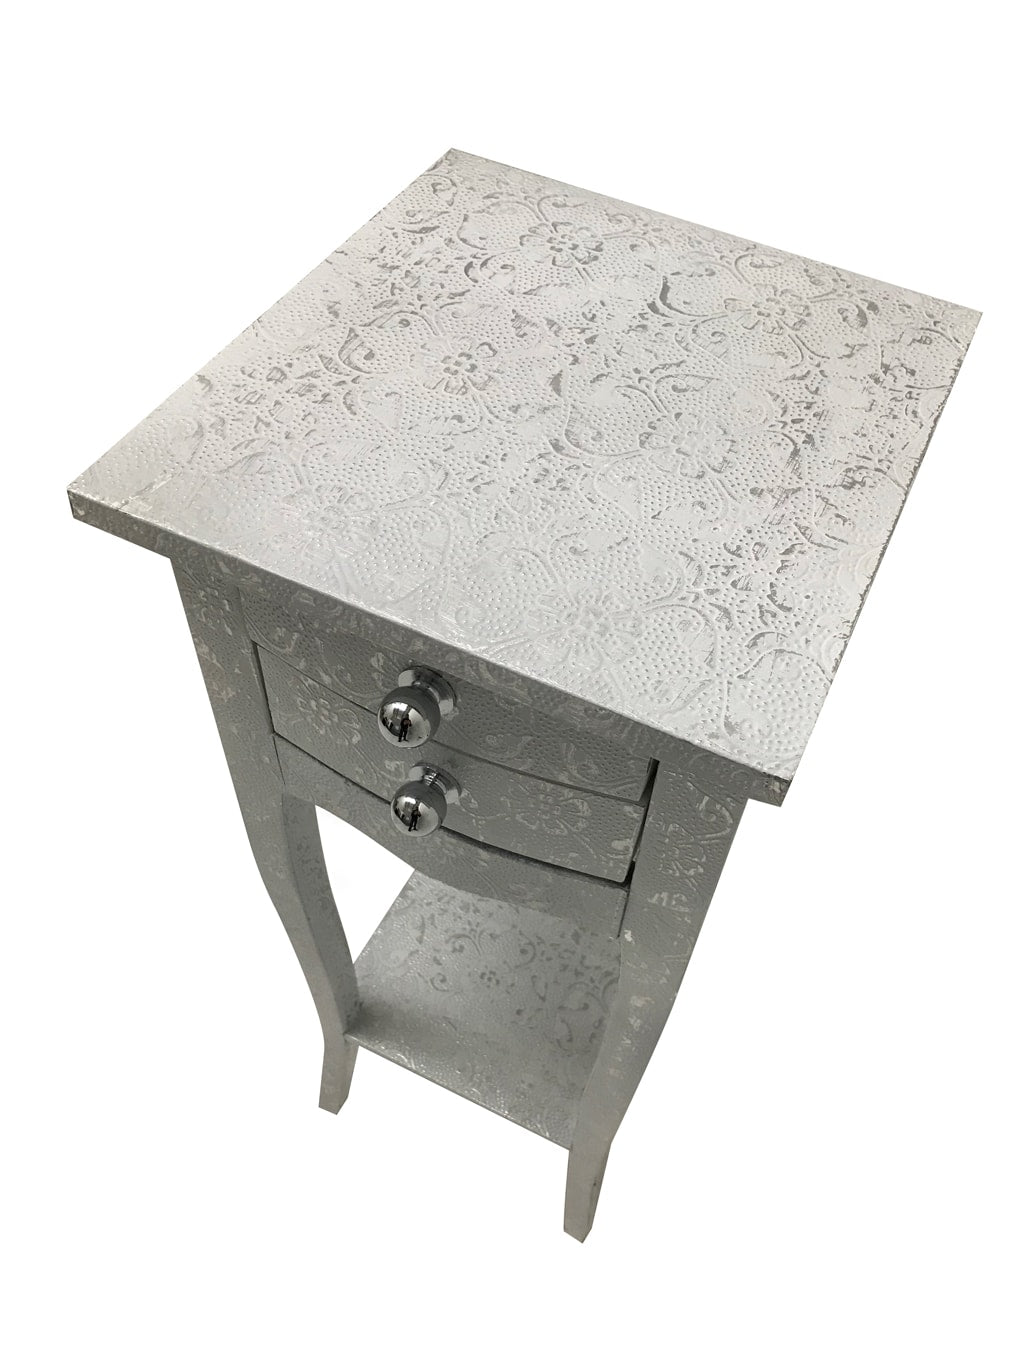 White compact bedside table with drawers and a shelf, metal embossed